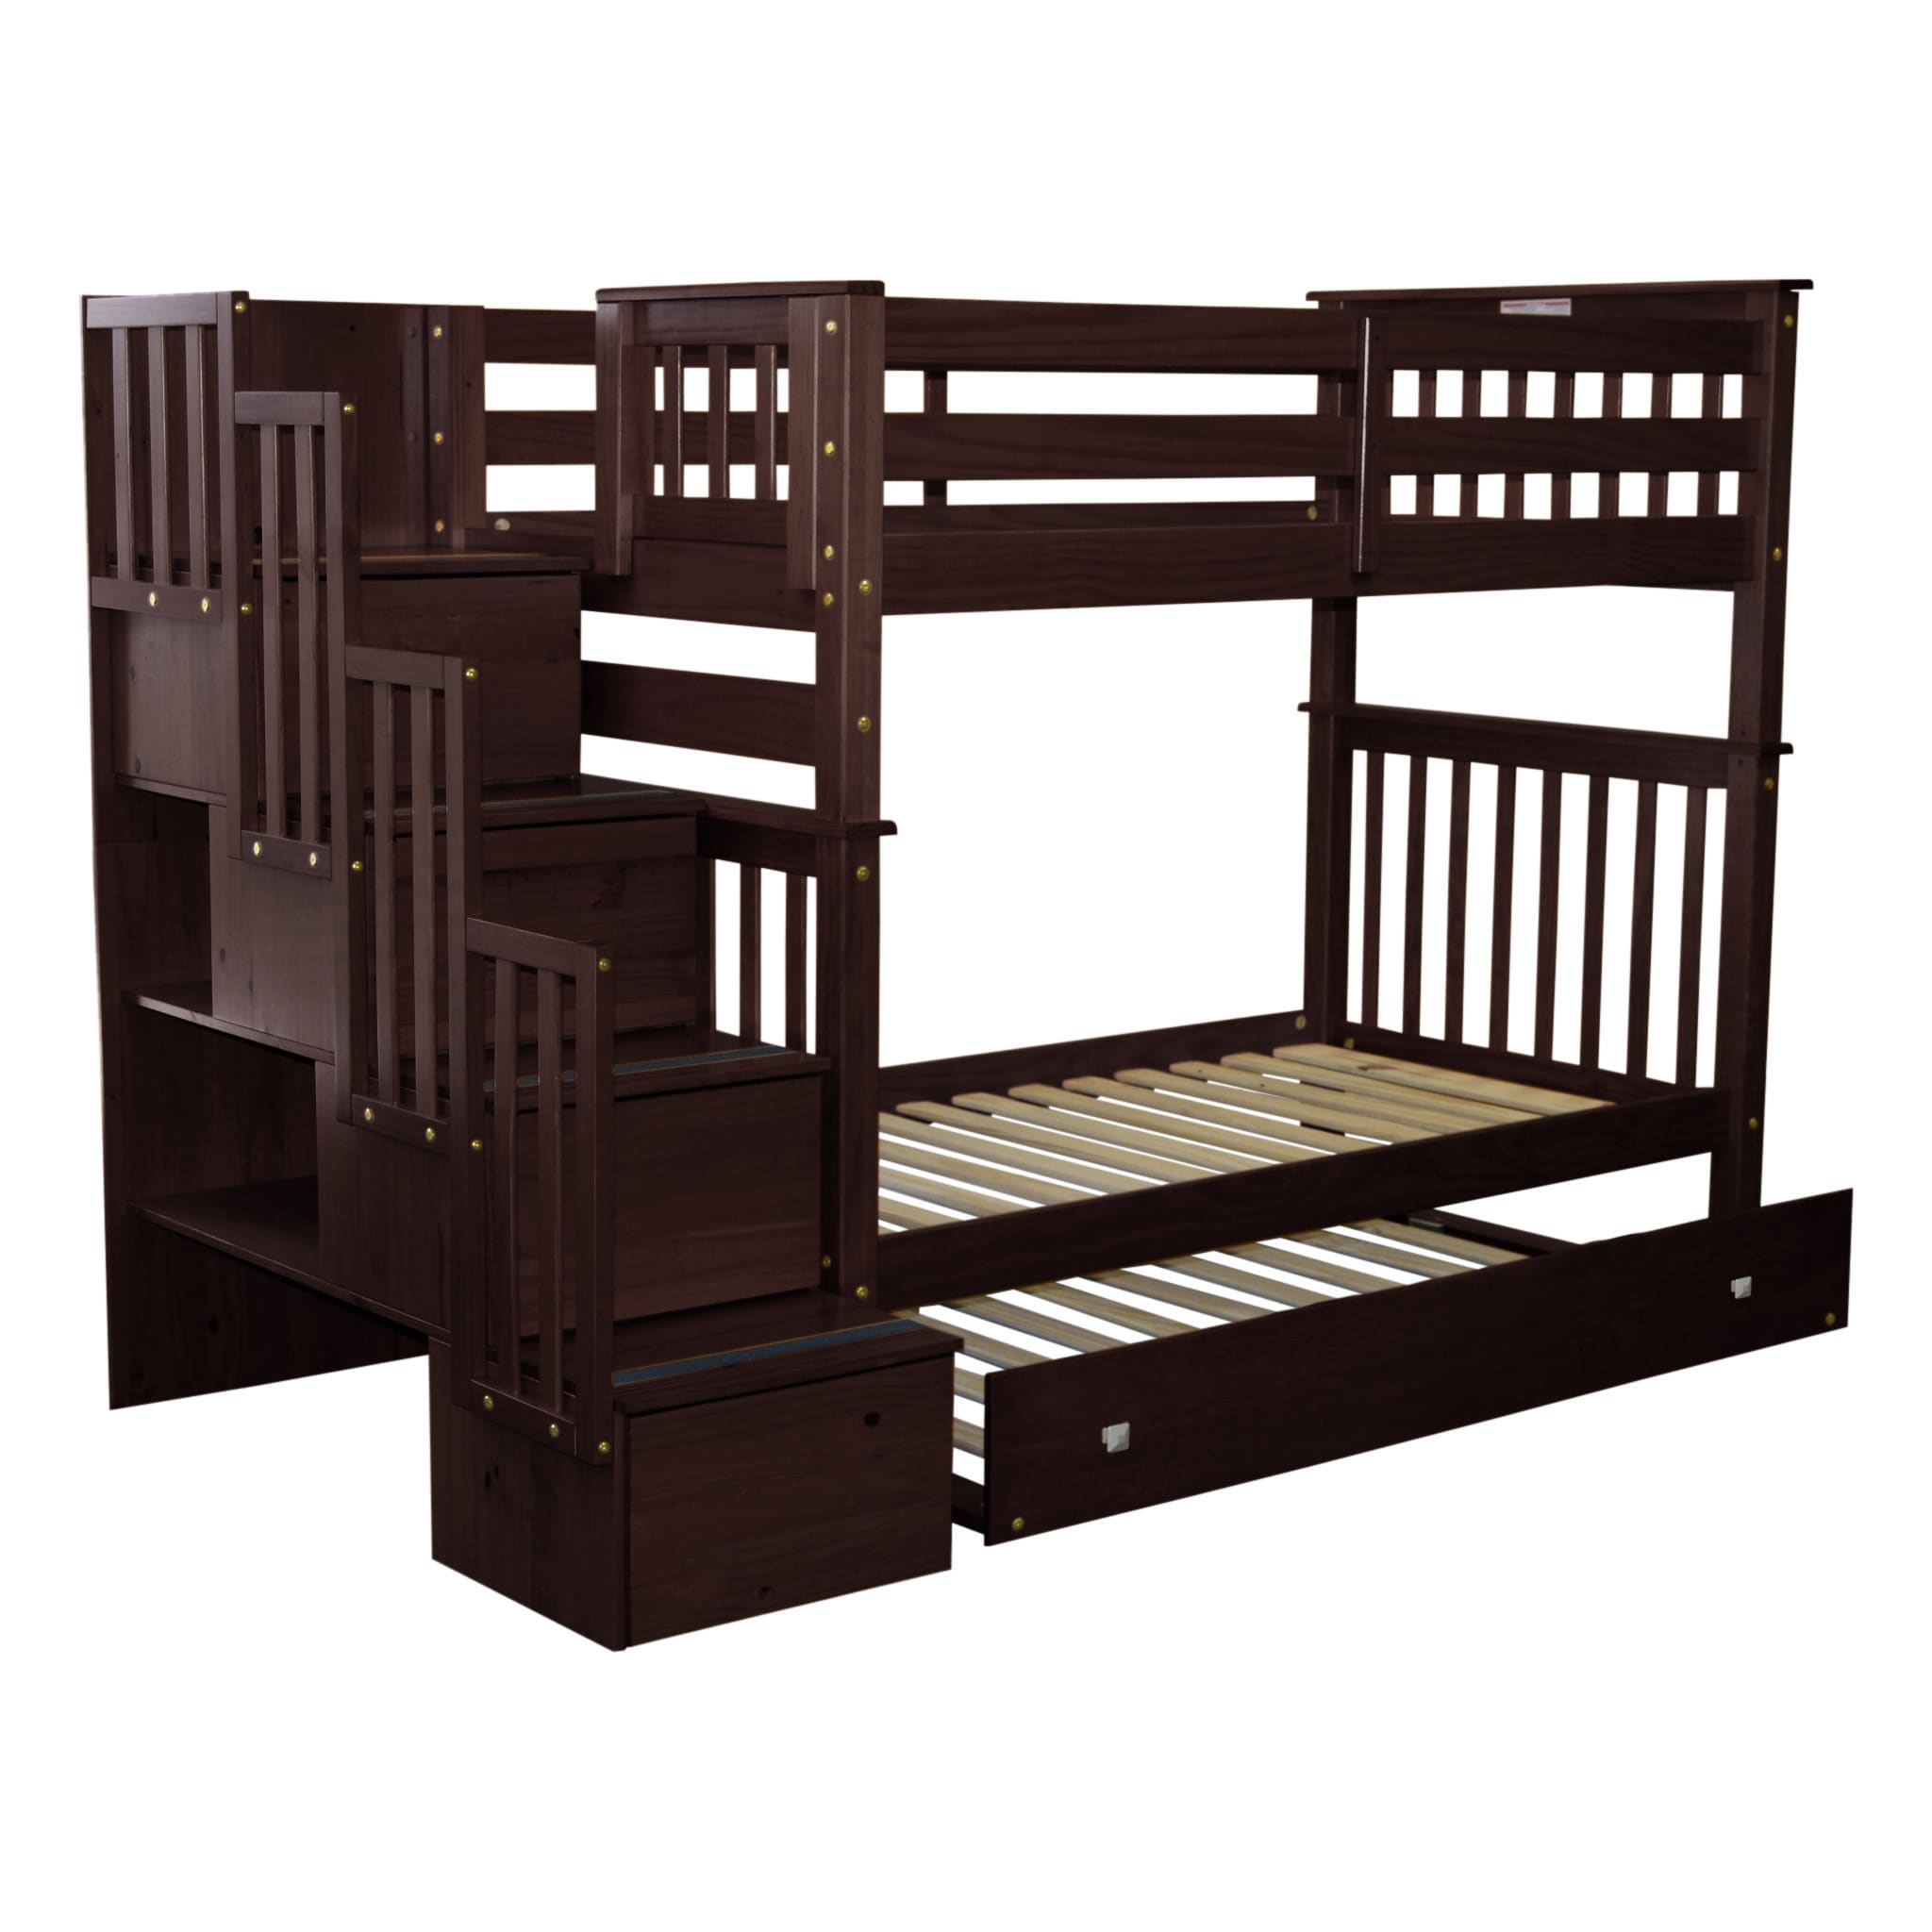 Shop Bedz King Bunk Beds Twin Over Twin Stairway 4 Drawers Twin